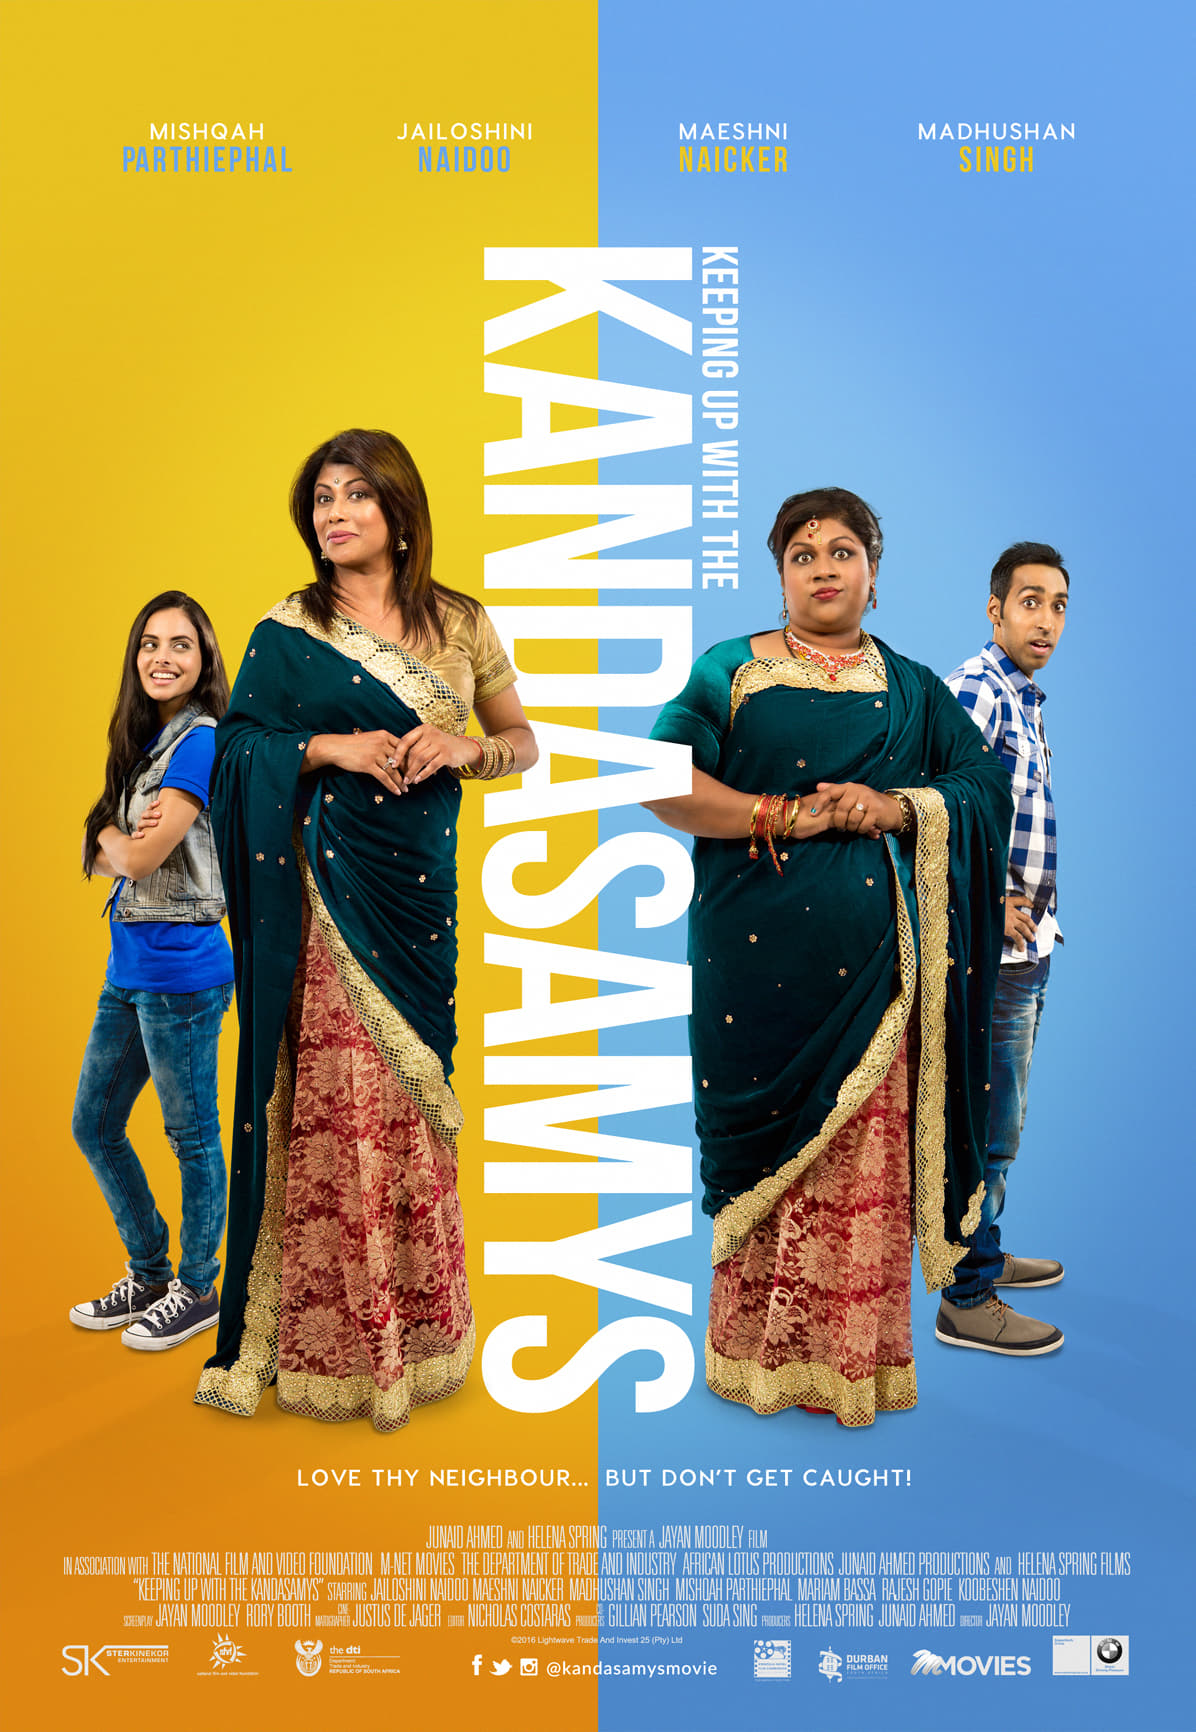 Keeping Up With The Kandsamys (2017)